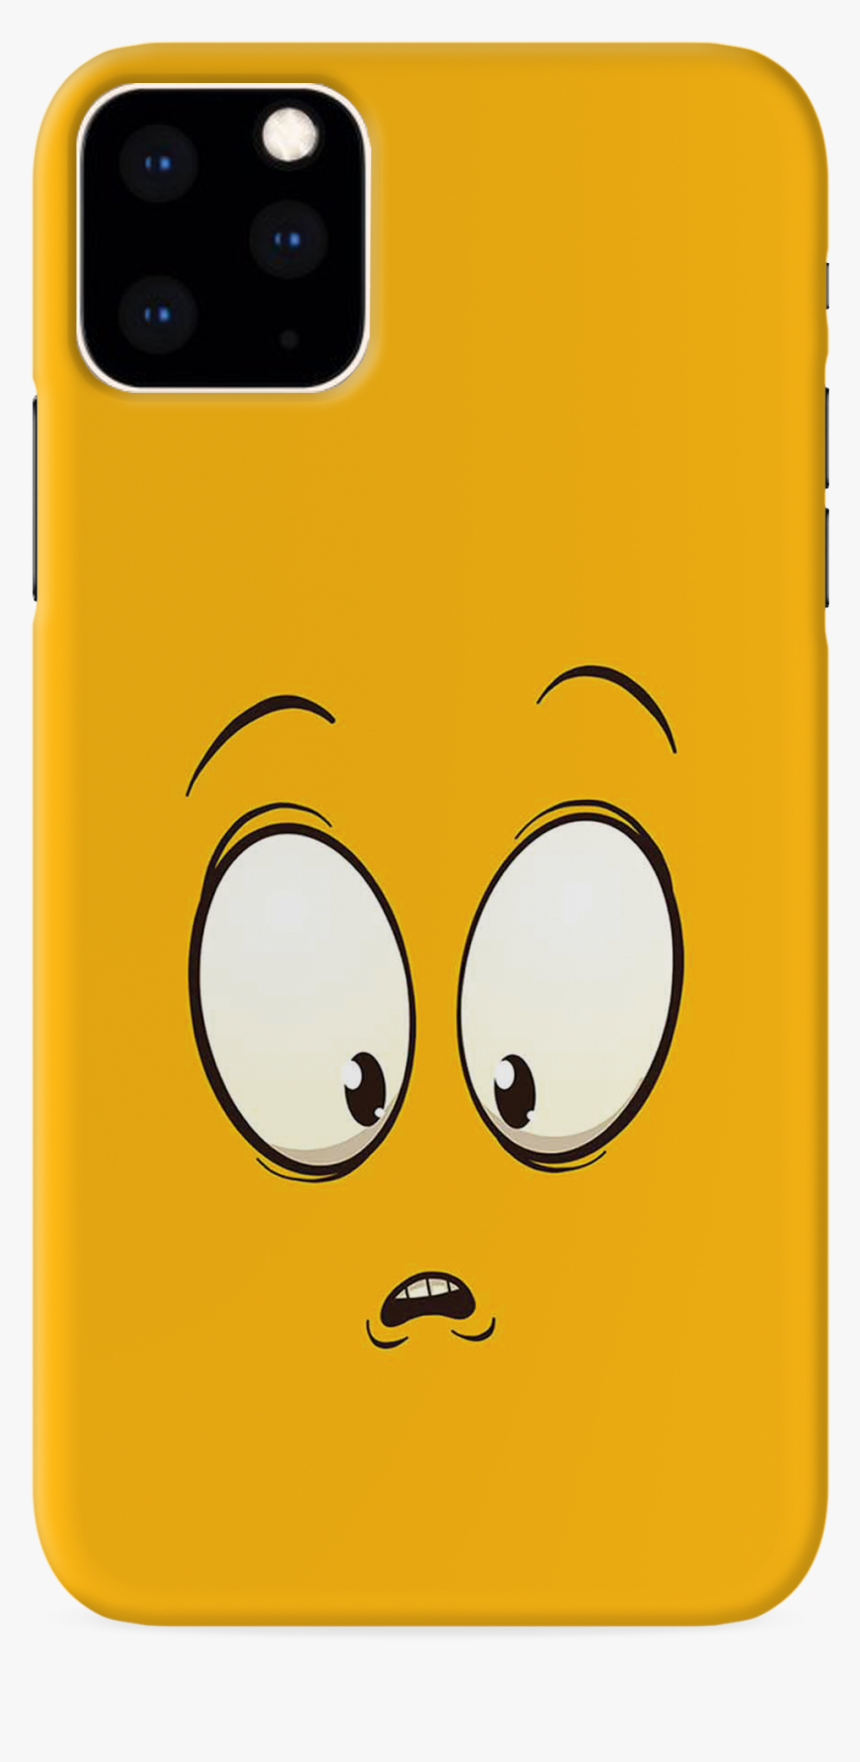 Confused Emoji Slim Case And Cover For Iphone 11 Pro - Iphone 11 Pro Max Emoji, HD Png Download, Free Download